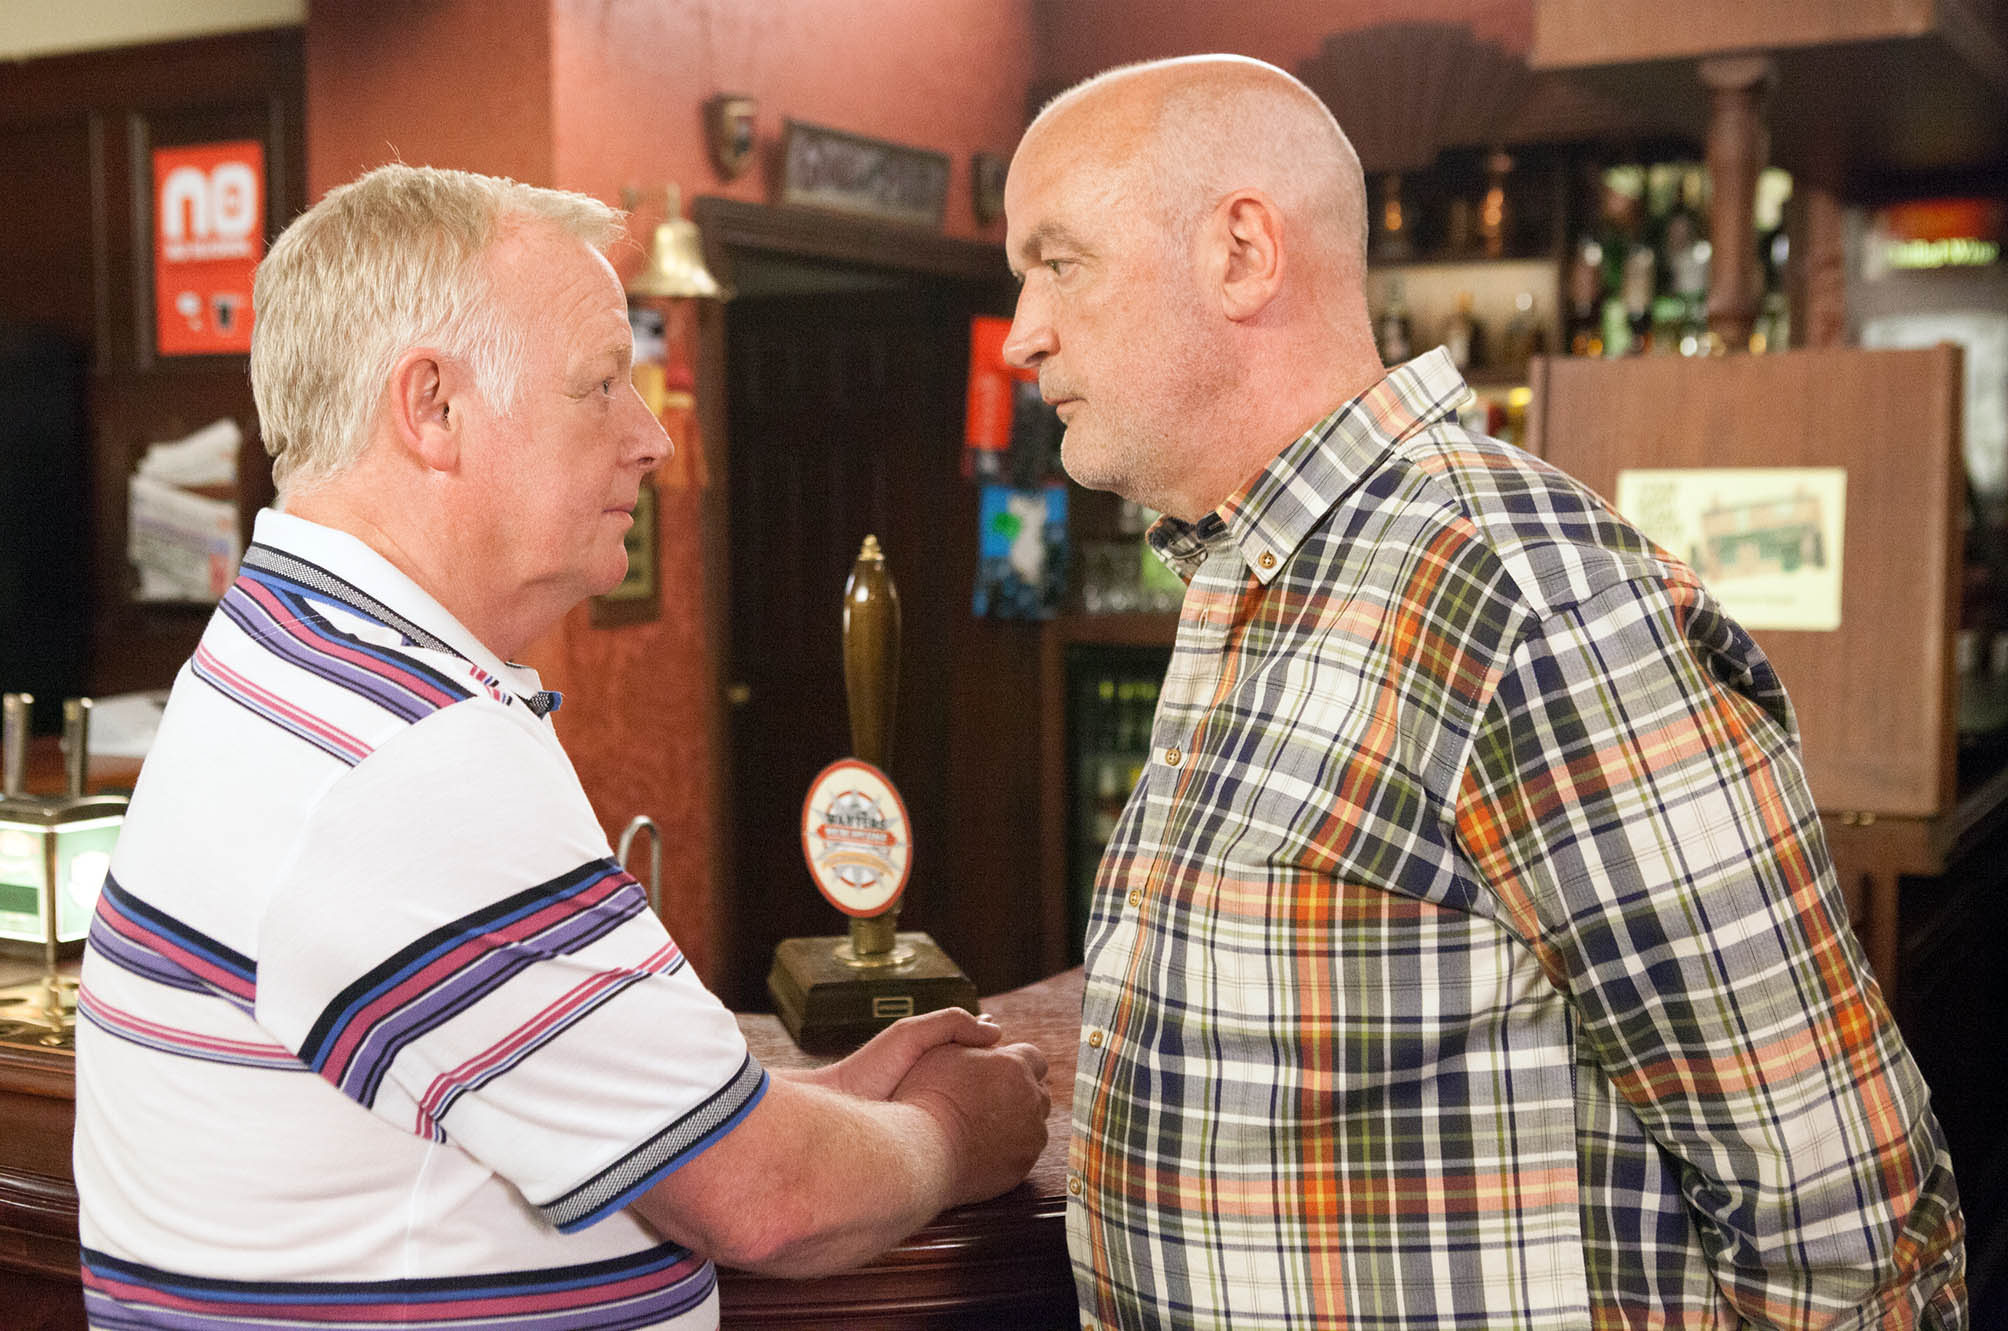 Coronation Street spoilers: Pat Phelan KILLS Michael Rodwell? Shock exit for Les Dennis' character